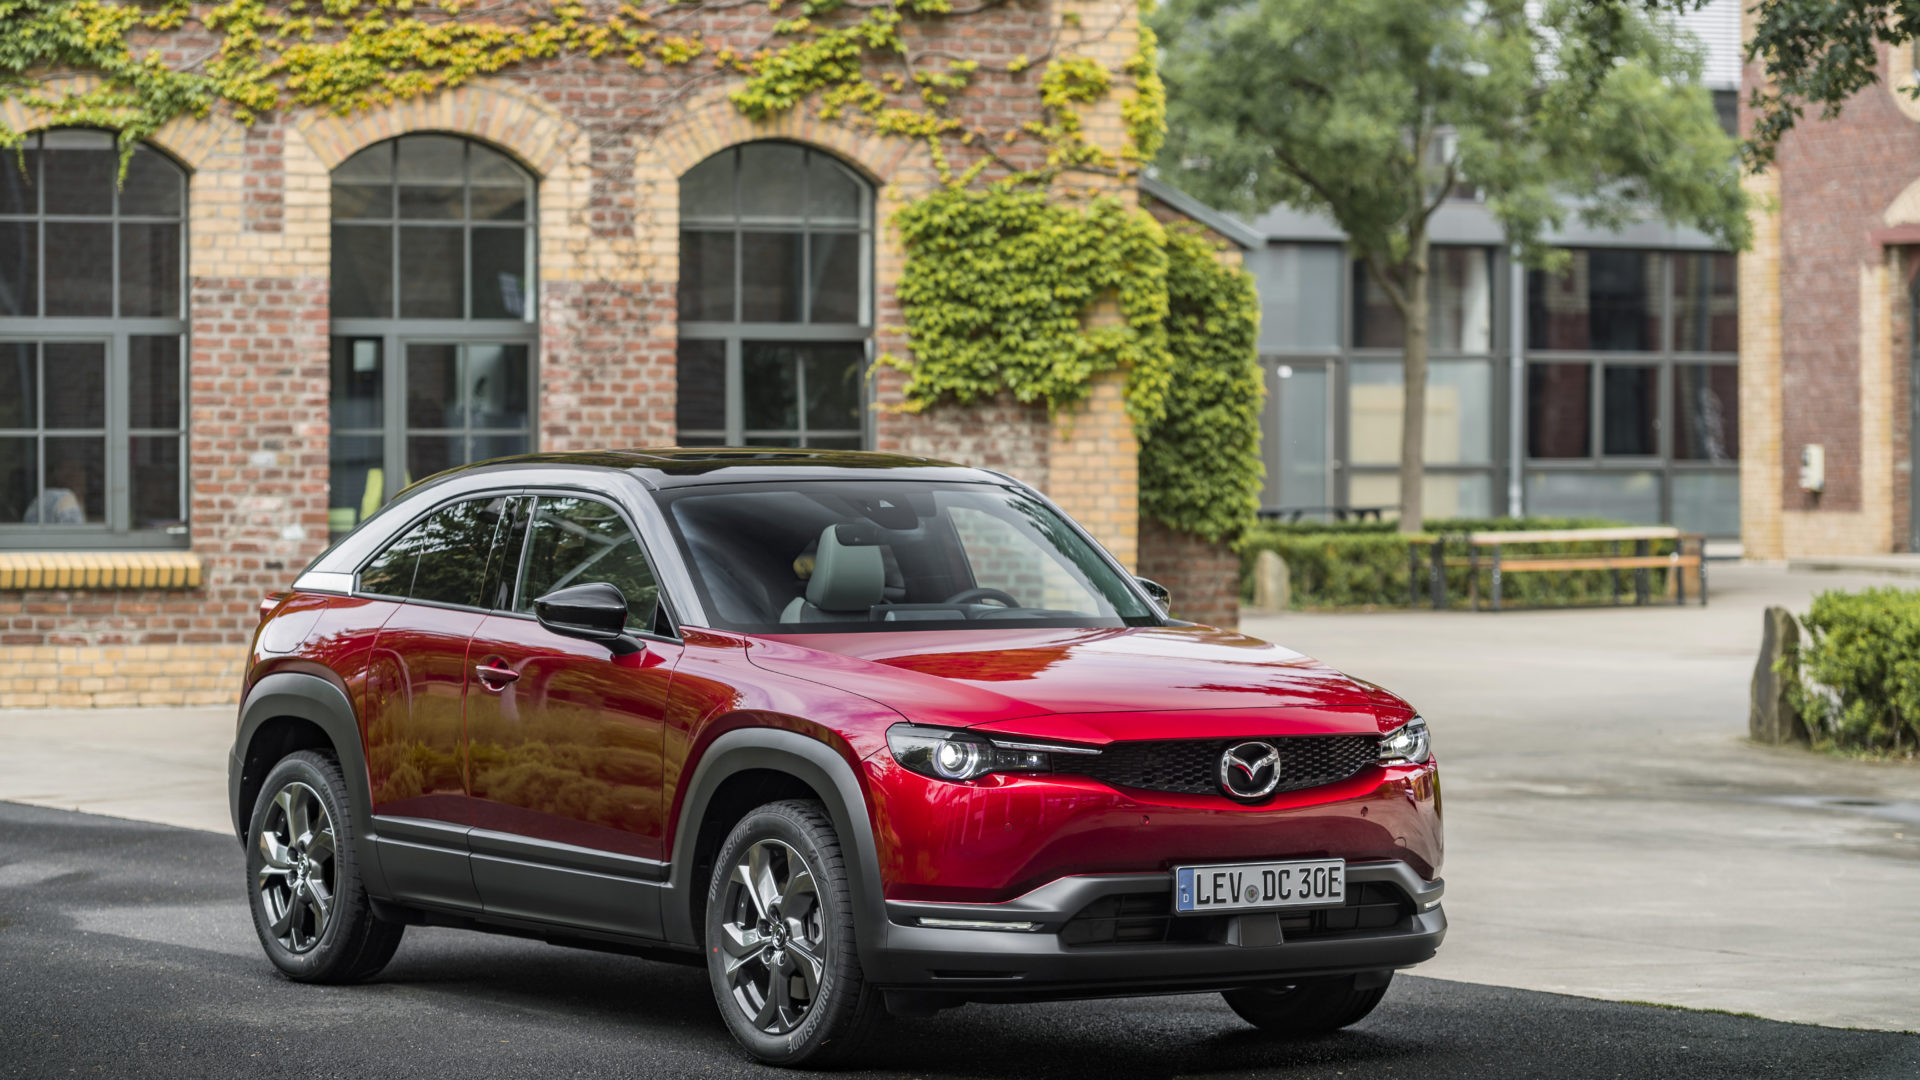 14-Static---Mazda-MX-30,-Soul-Red-Crystal,-Modern-Confidence